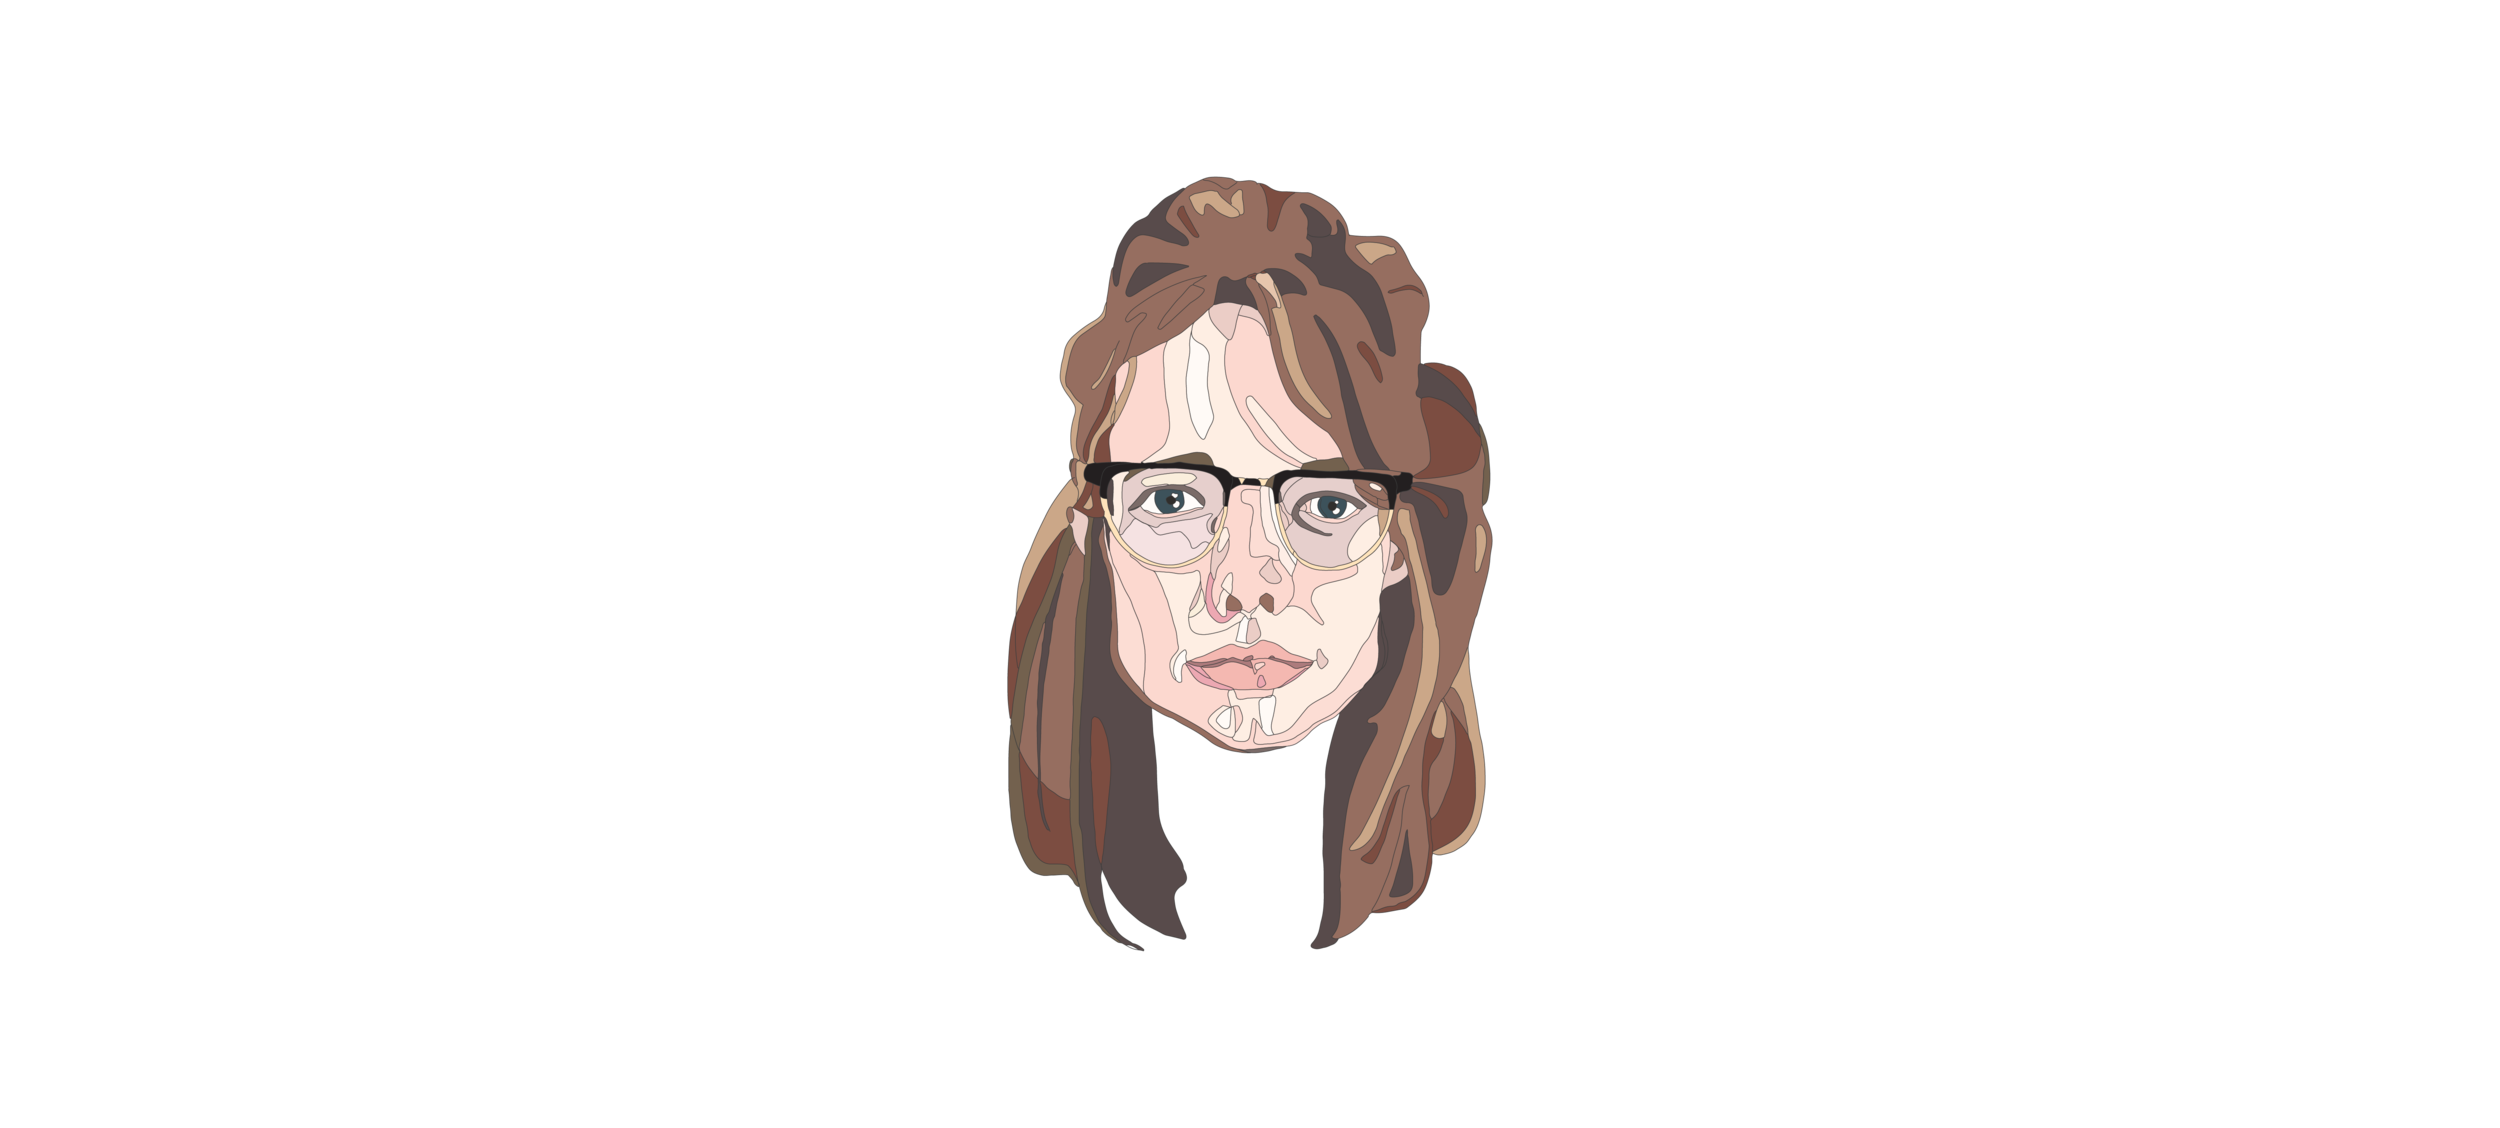 selfportrait-01.png